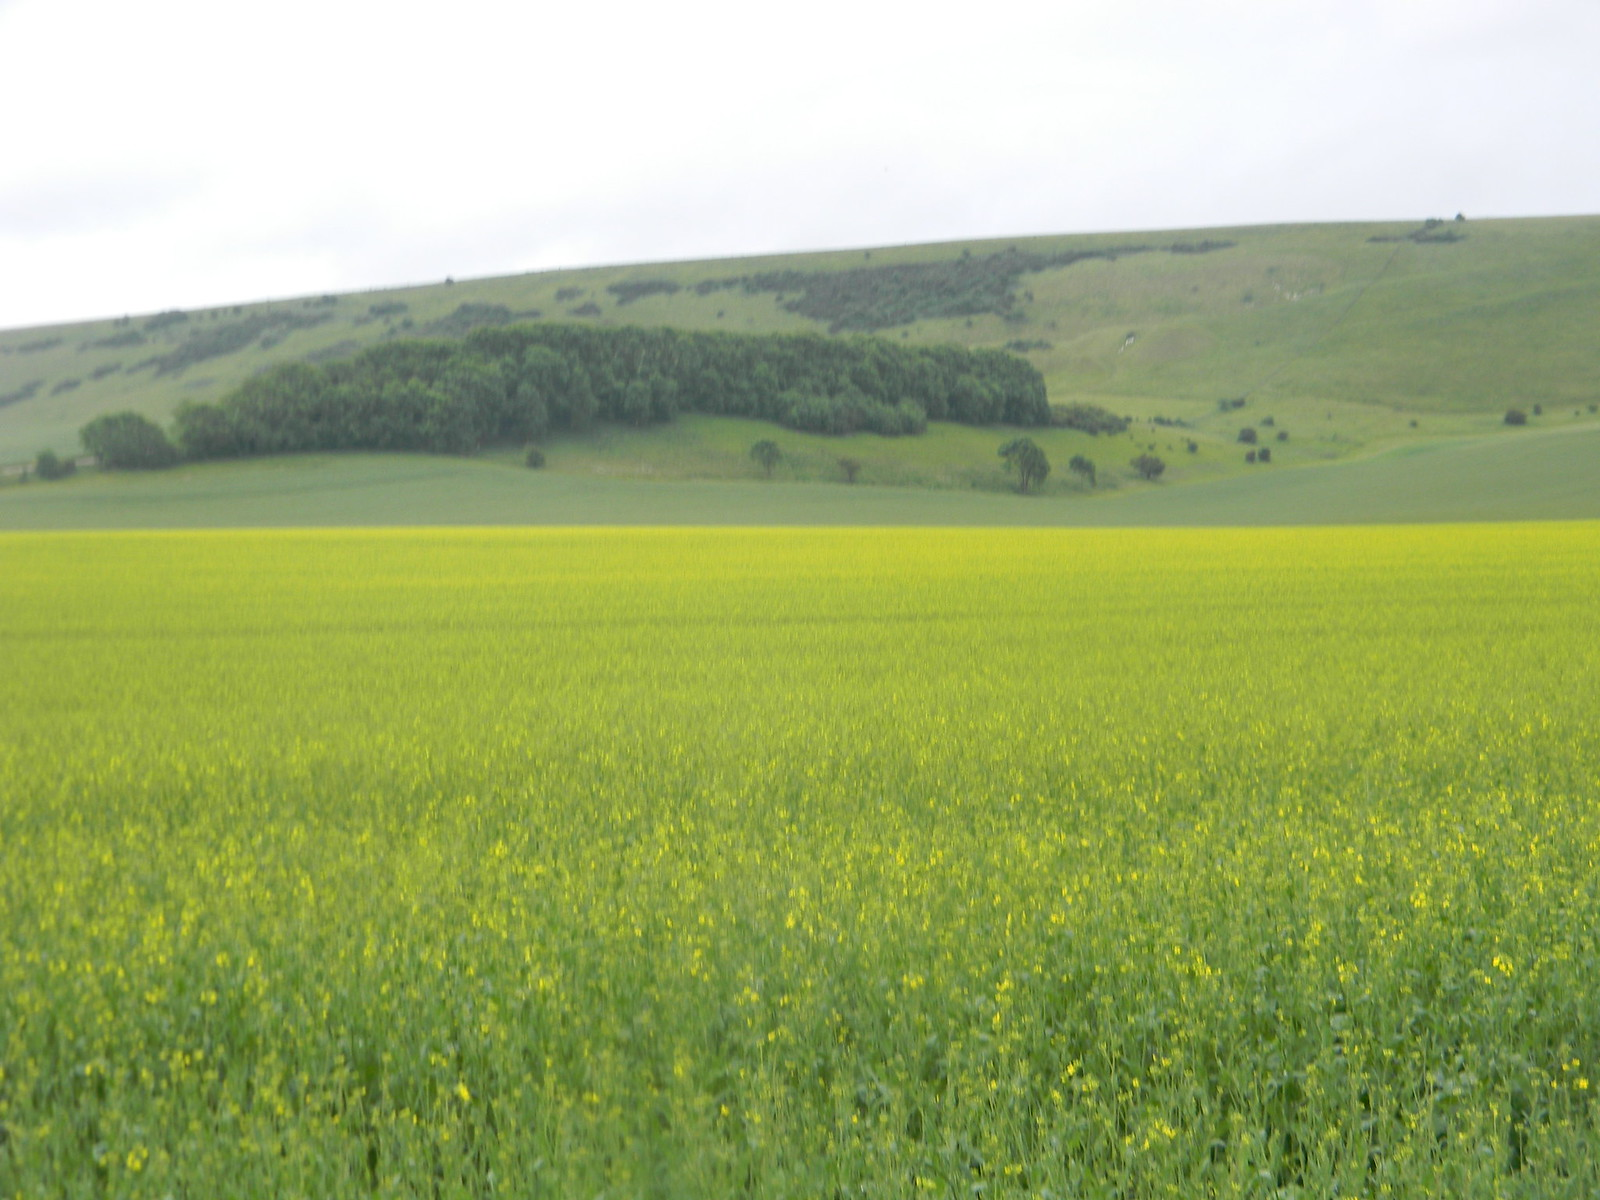 Giant rapefield against the downs Lewes to Berwick